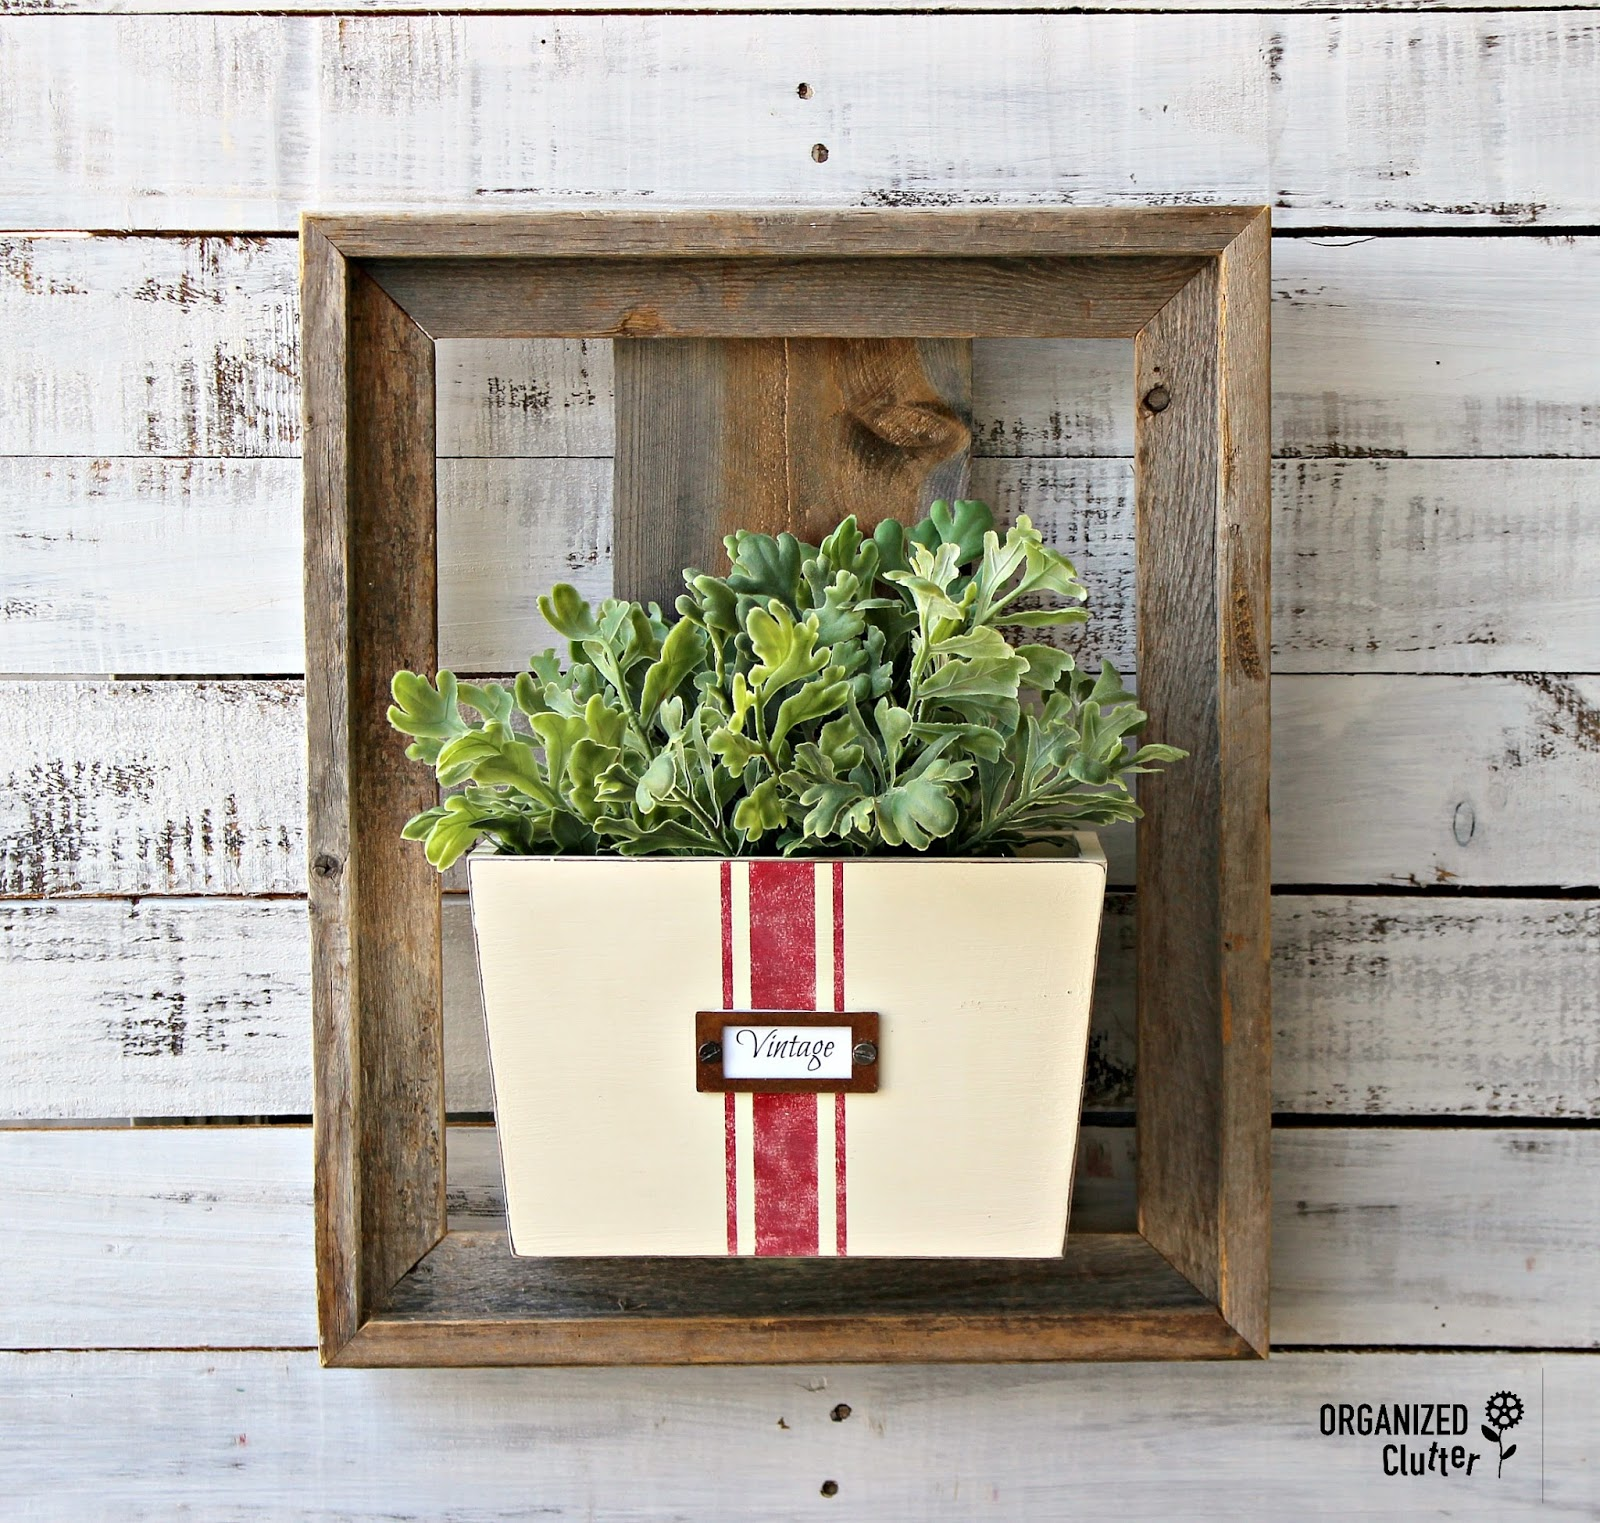 Grain sack striped file holder wall planter by Organized Clutter, featured on Funky Junk Interiors